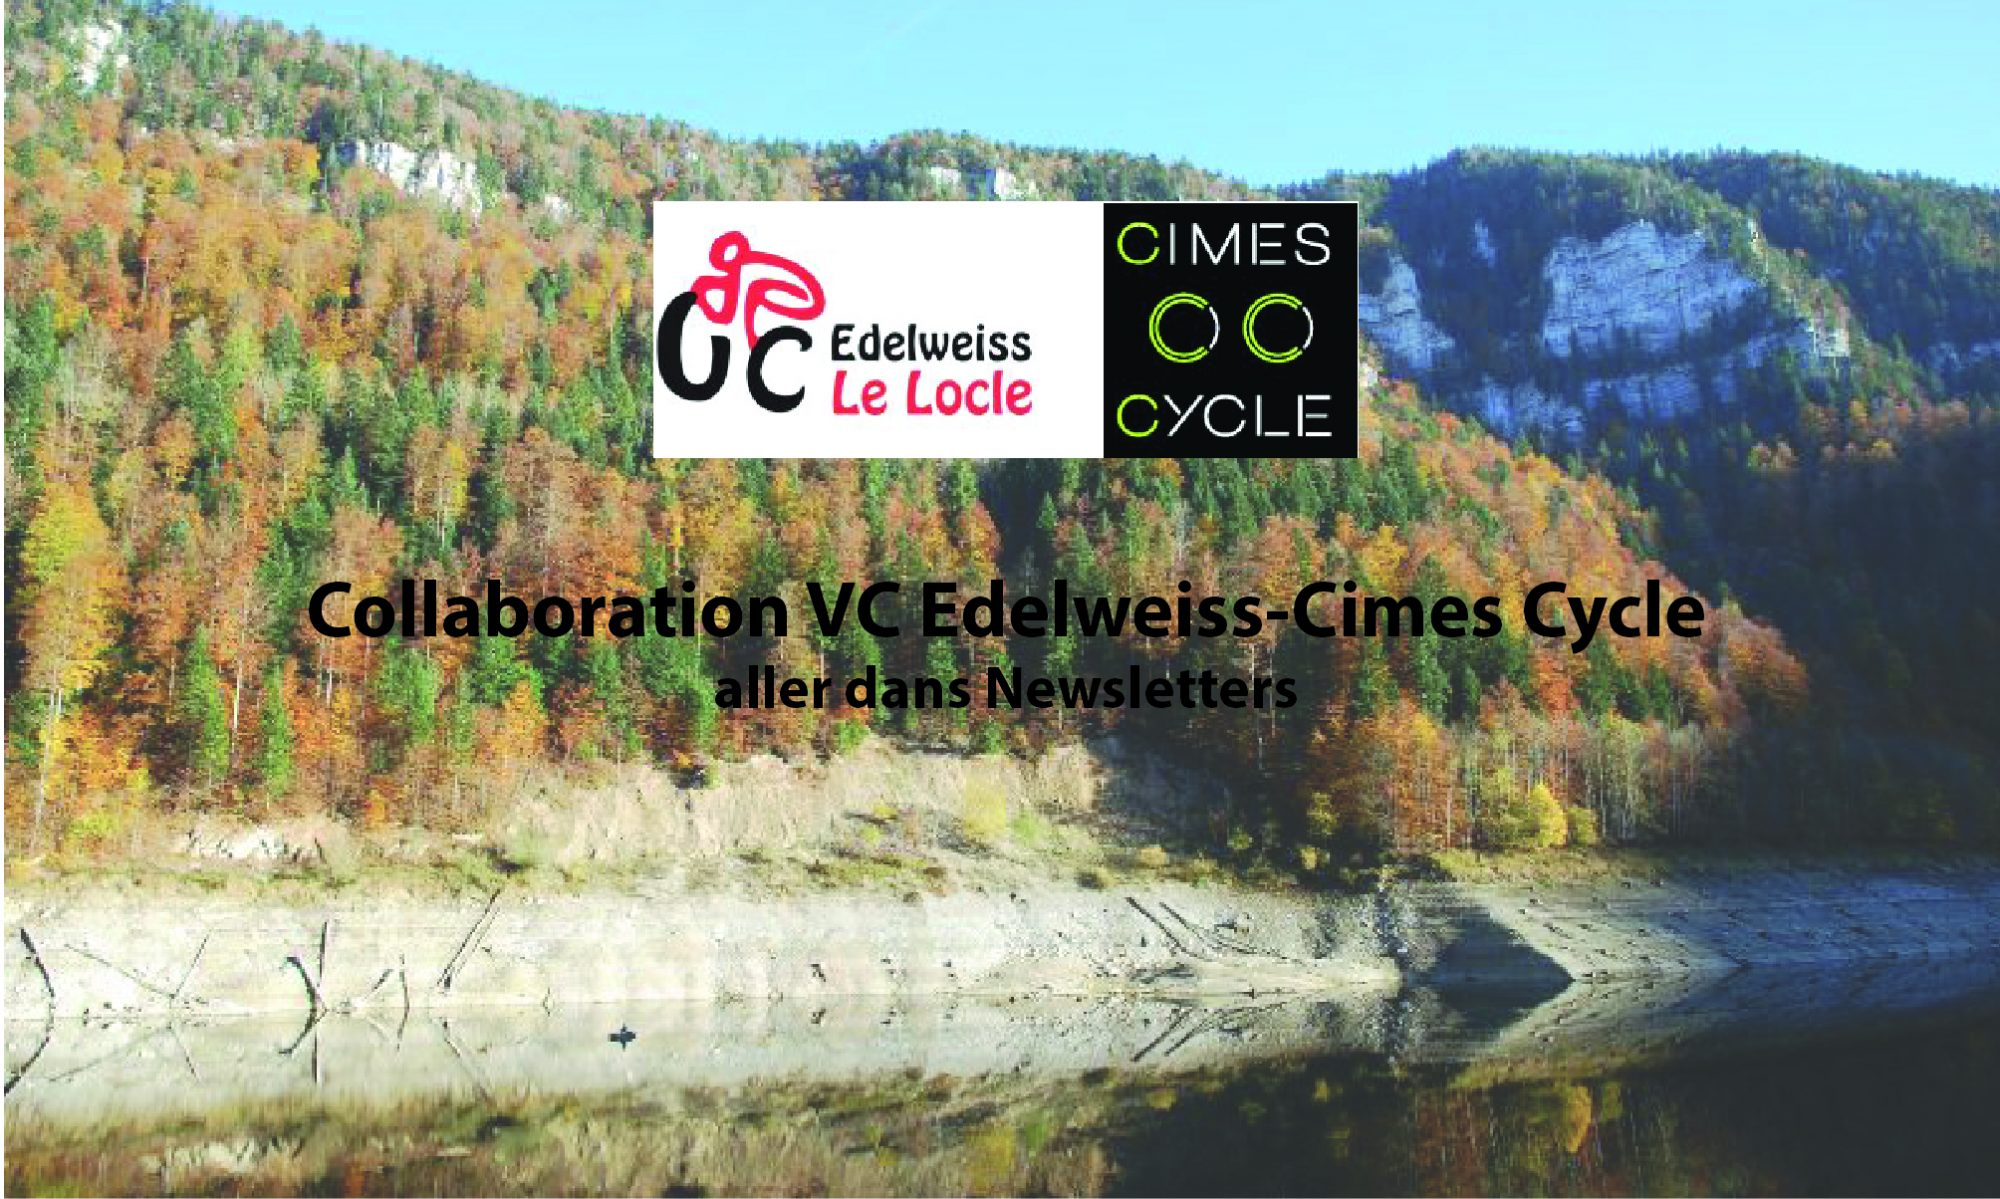 Cimes Cycle